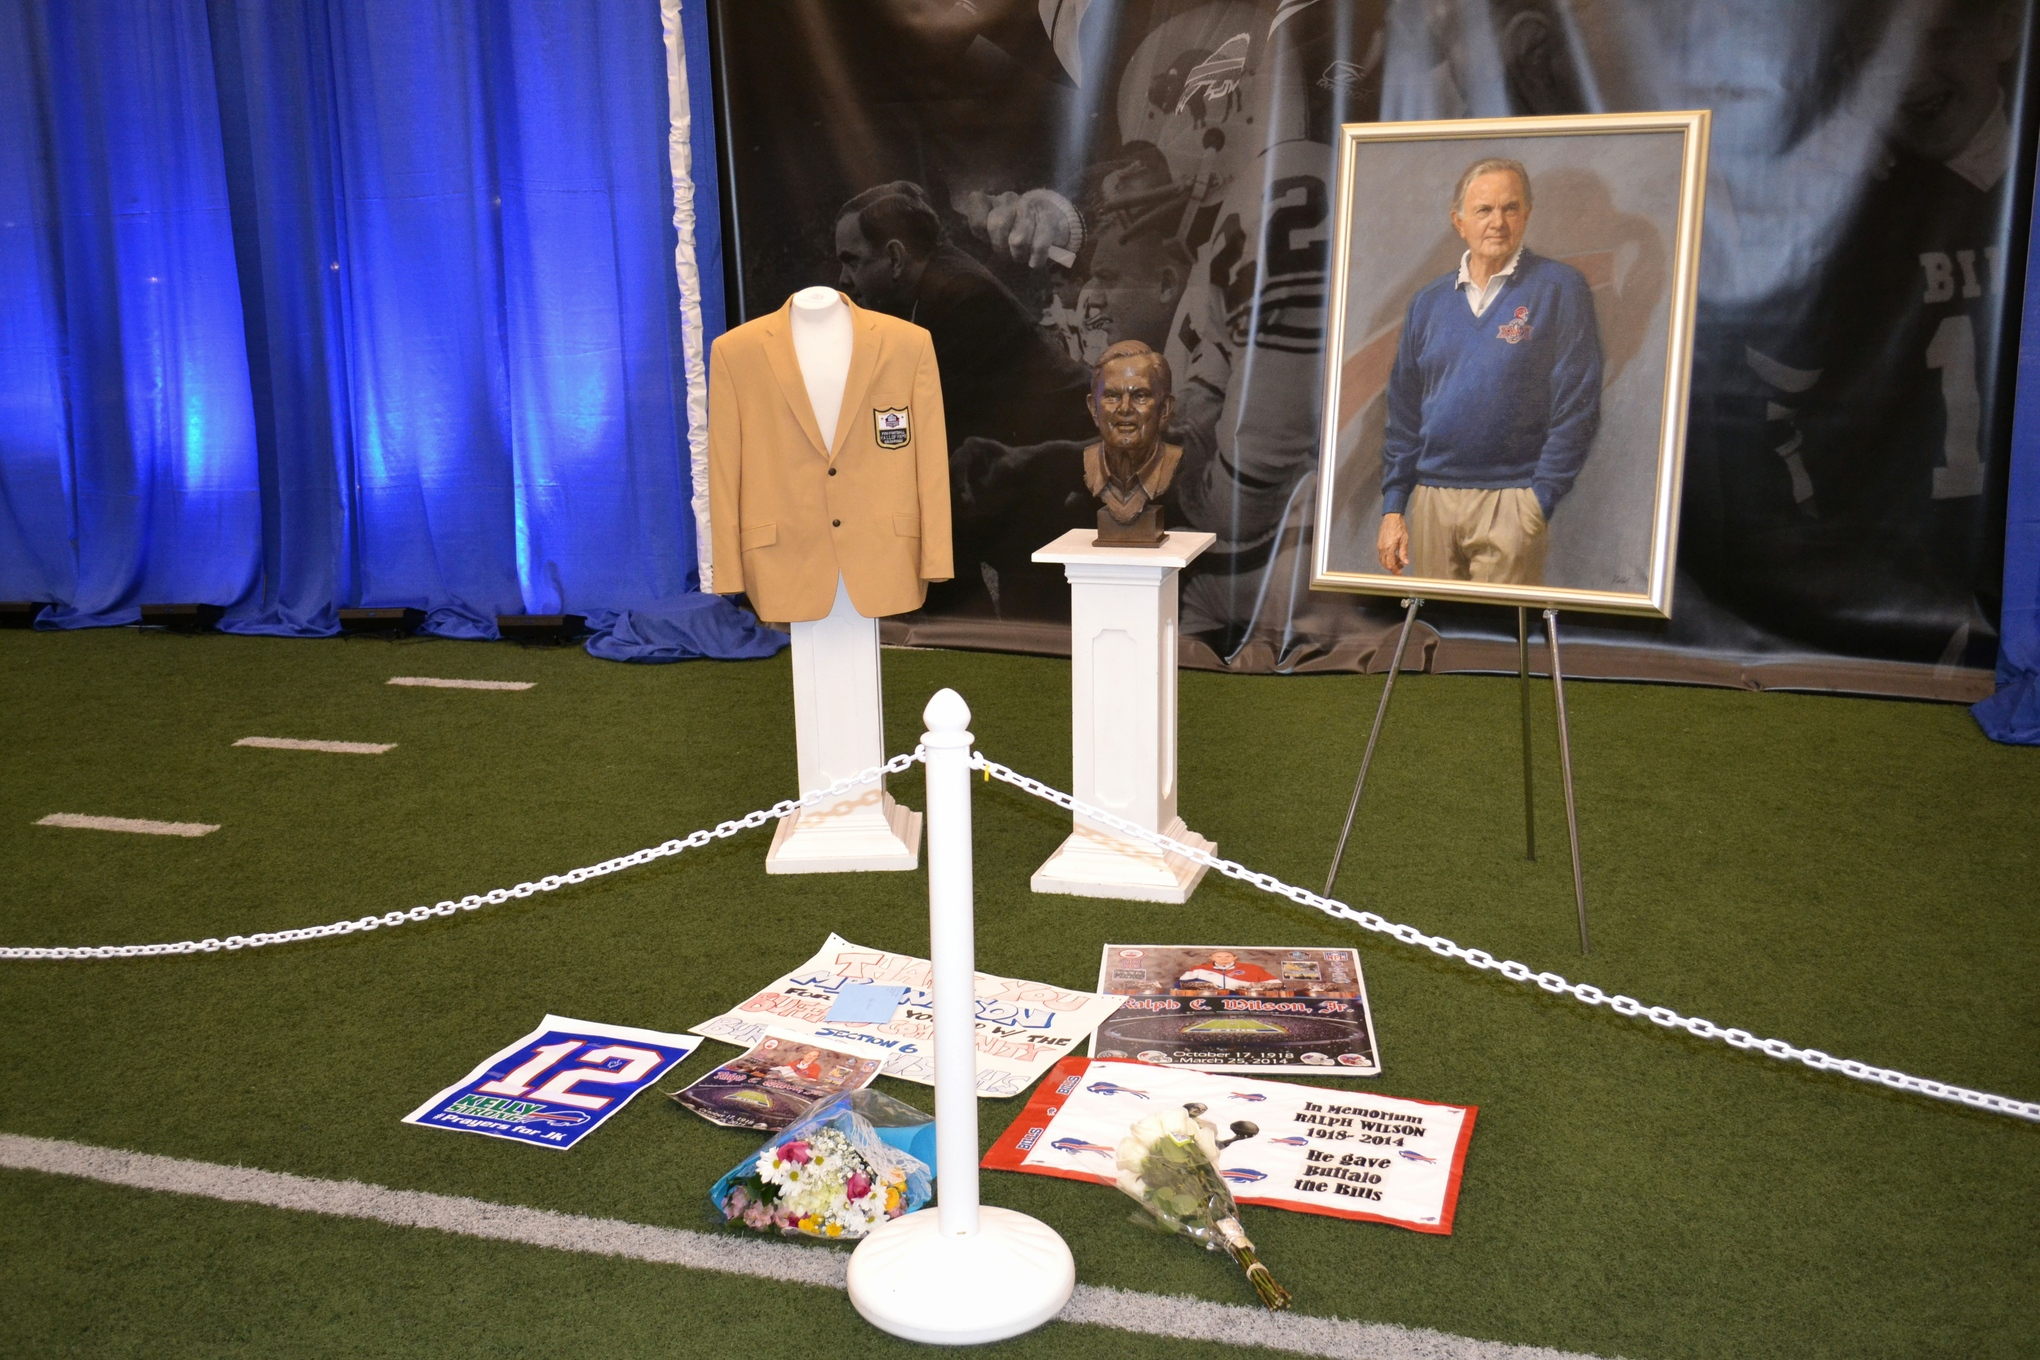 Gifts left for Buffalo Bills owner Ralph C. Wilson at his memorial. April 5, 2014.